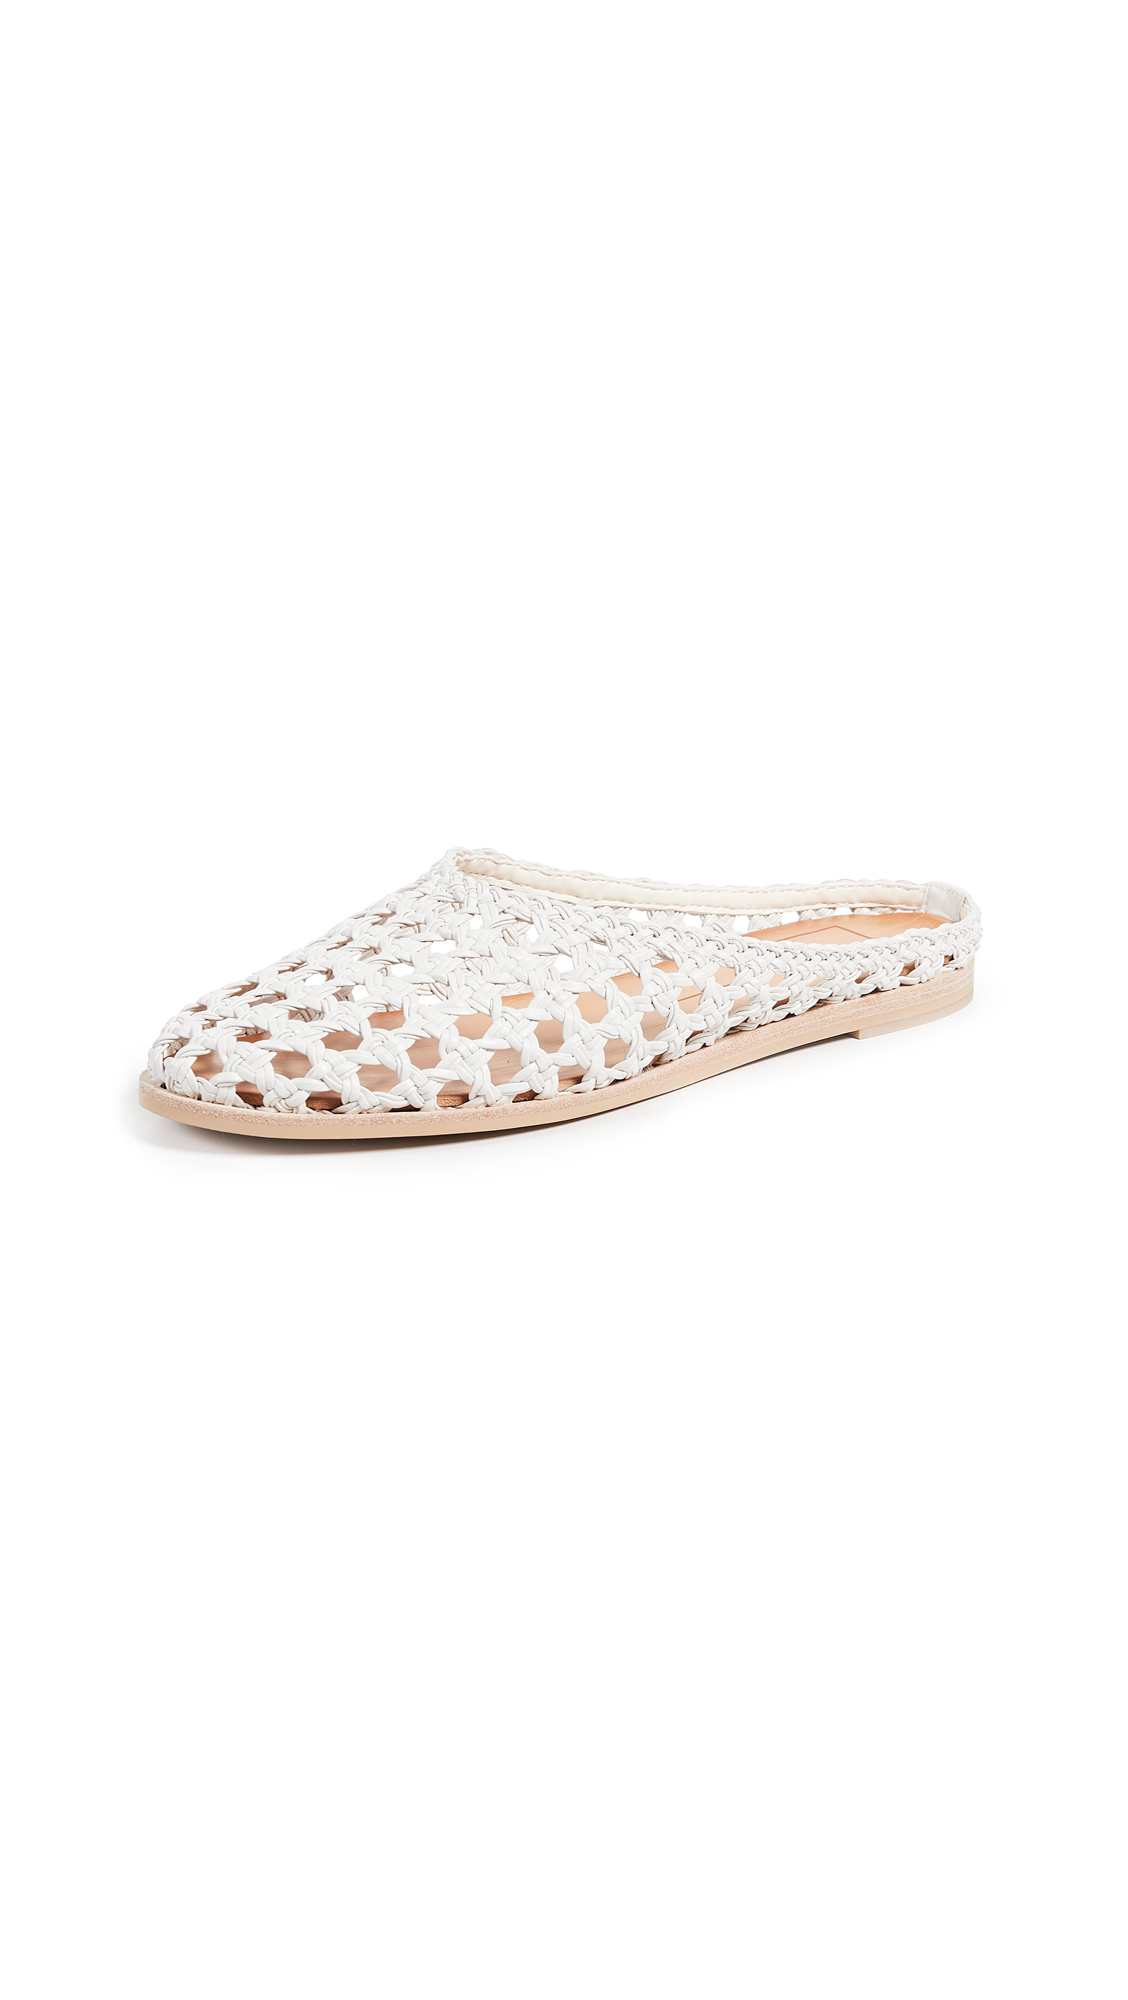 Dolce Vita Aveline Woven Flats In Off White